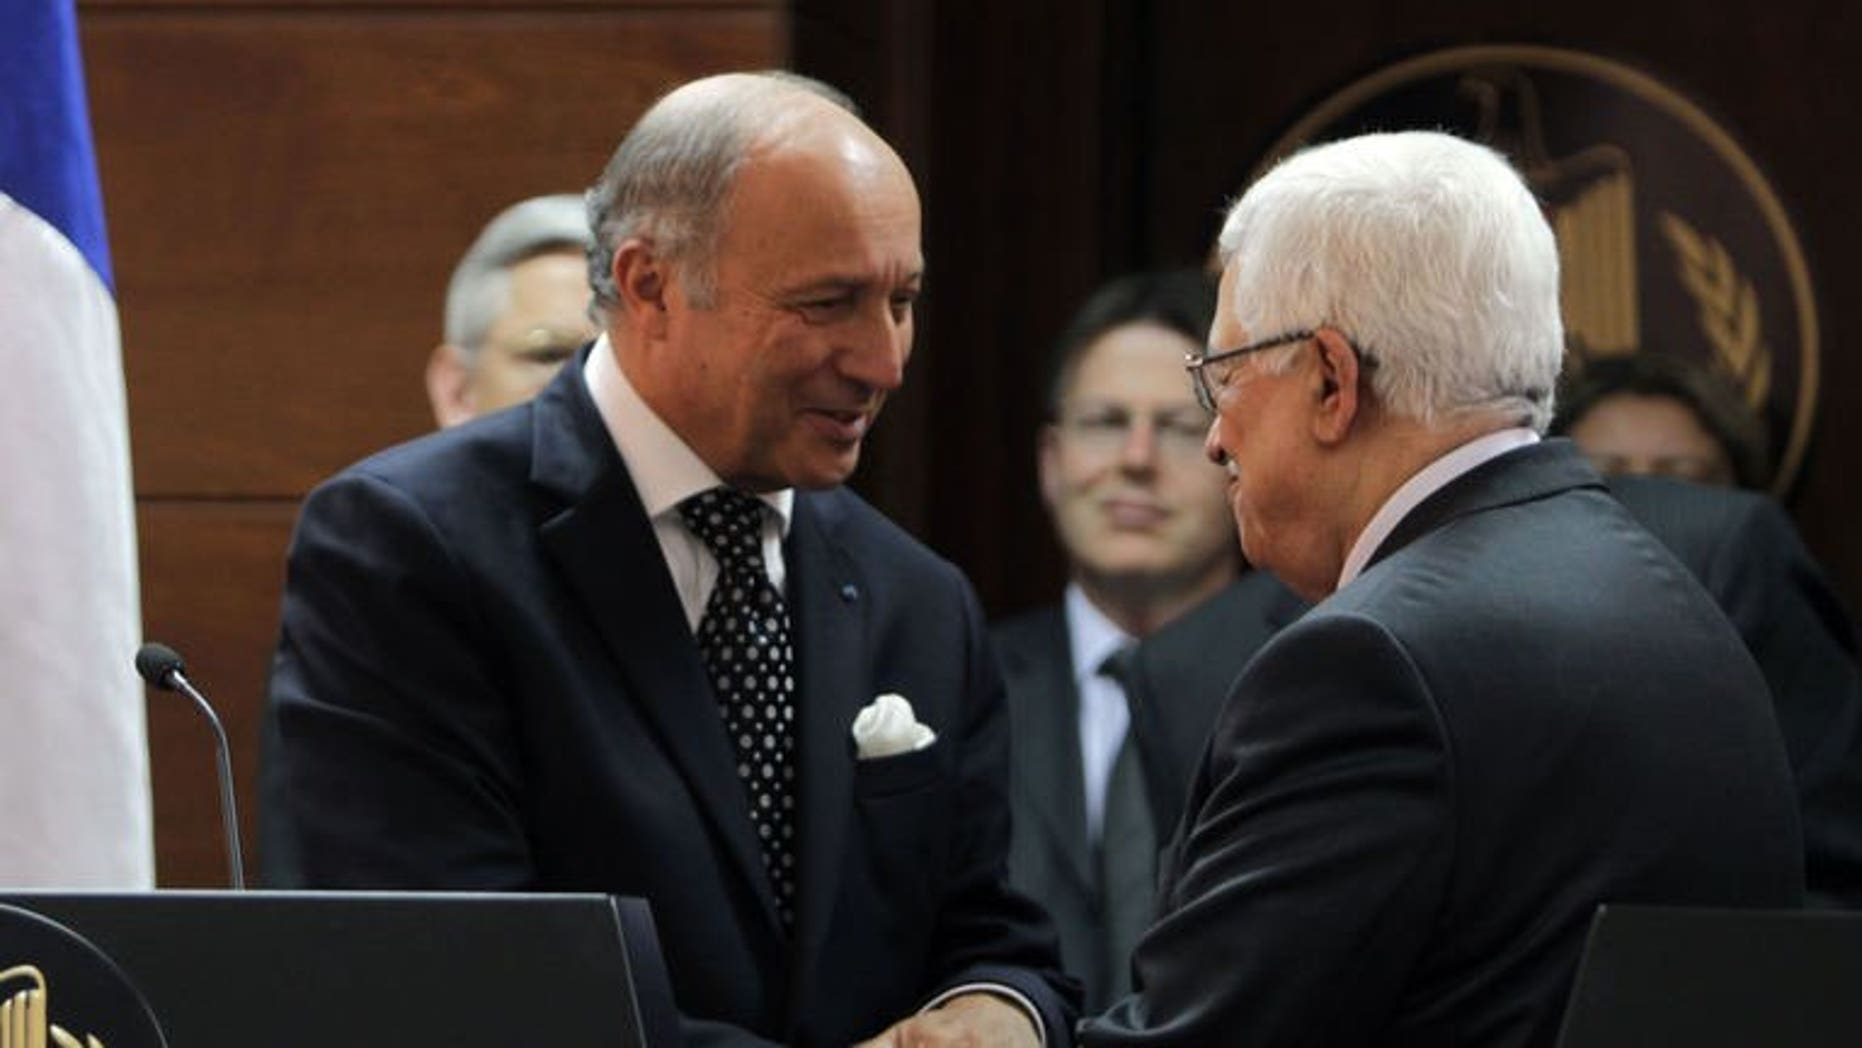 """French Foreign Minister Laurent Fabius meets Palestinian President Mahmoud Abbas (R) on August 24, 2013 in Ramallah, the West Bank. A succesful outcome to the Israel-Palestinians negotiations would be like a """"thunderbolt"""" for peace in the crisis-ridden Middle East, Fabius said."""